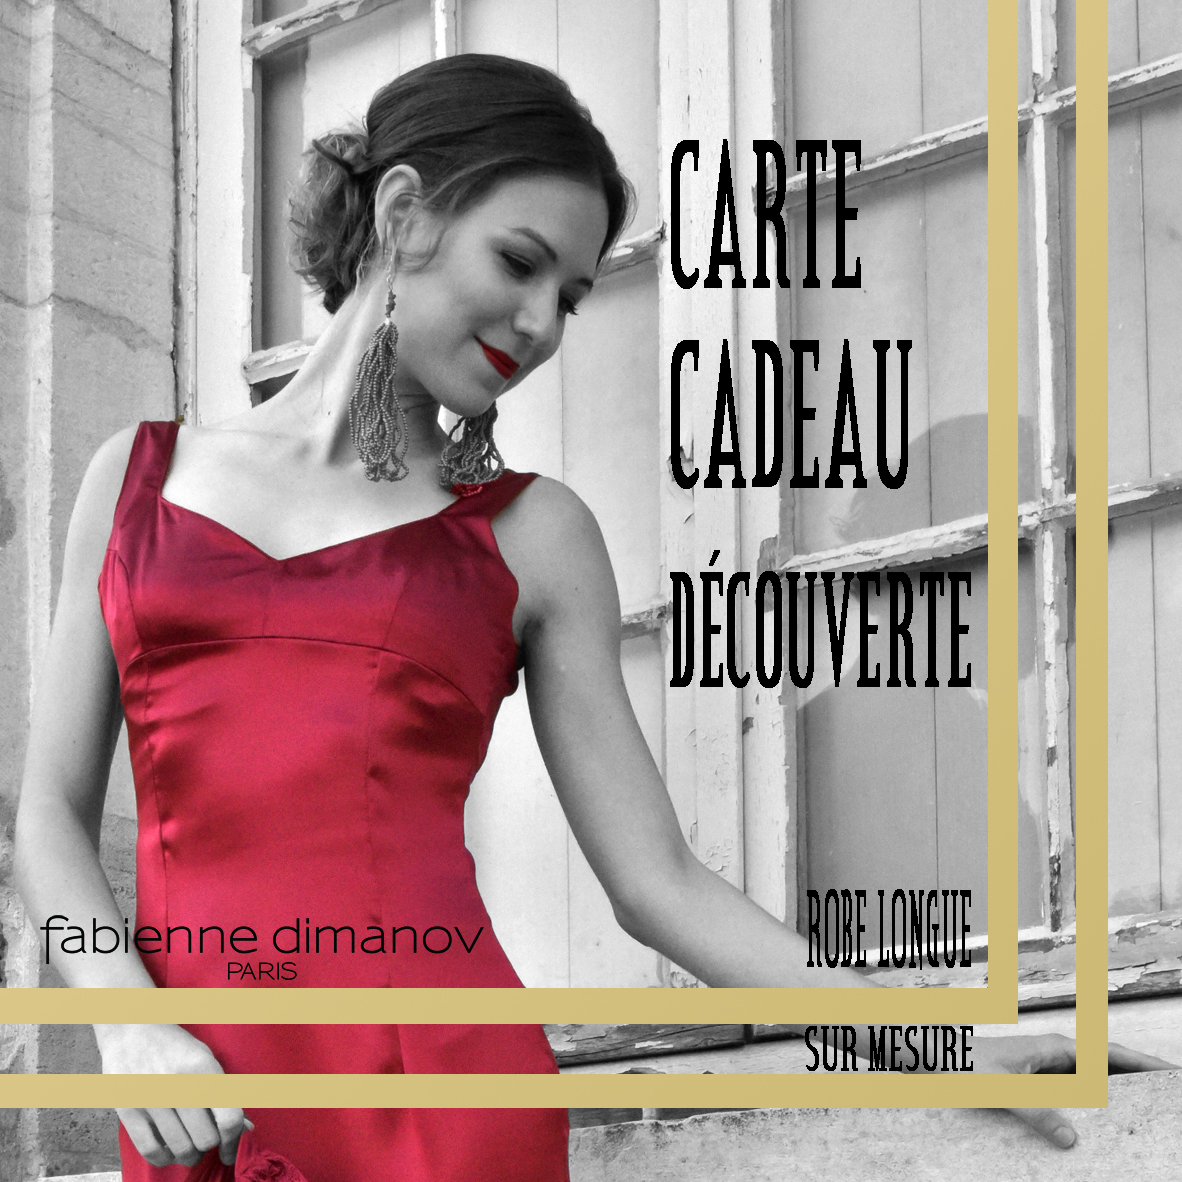 CARTE CADEAU DECOUVERTE - ROBE COCKTAIL LONGUE - Fabienne Dimanov Paris